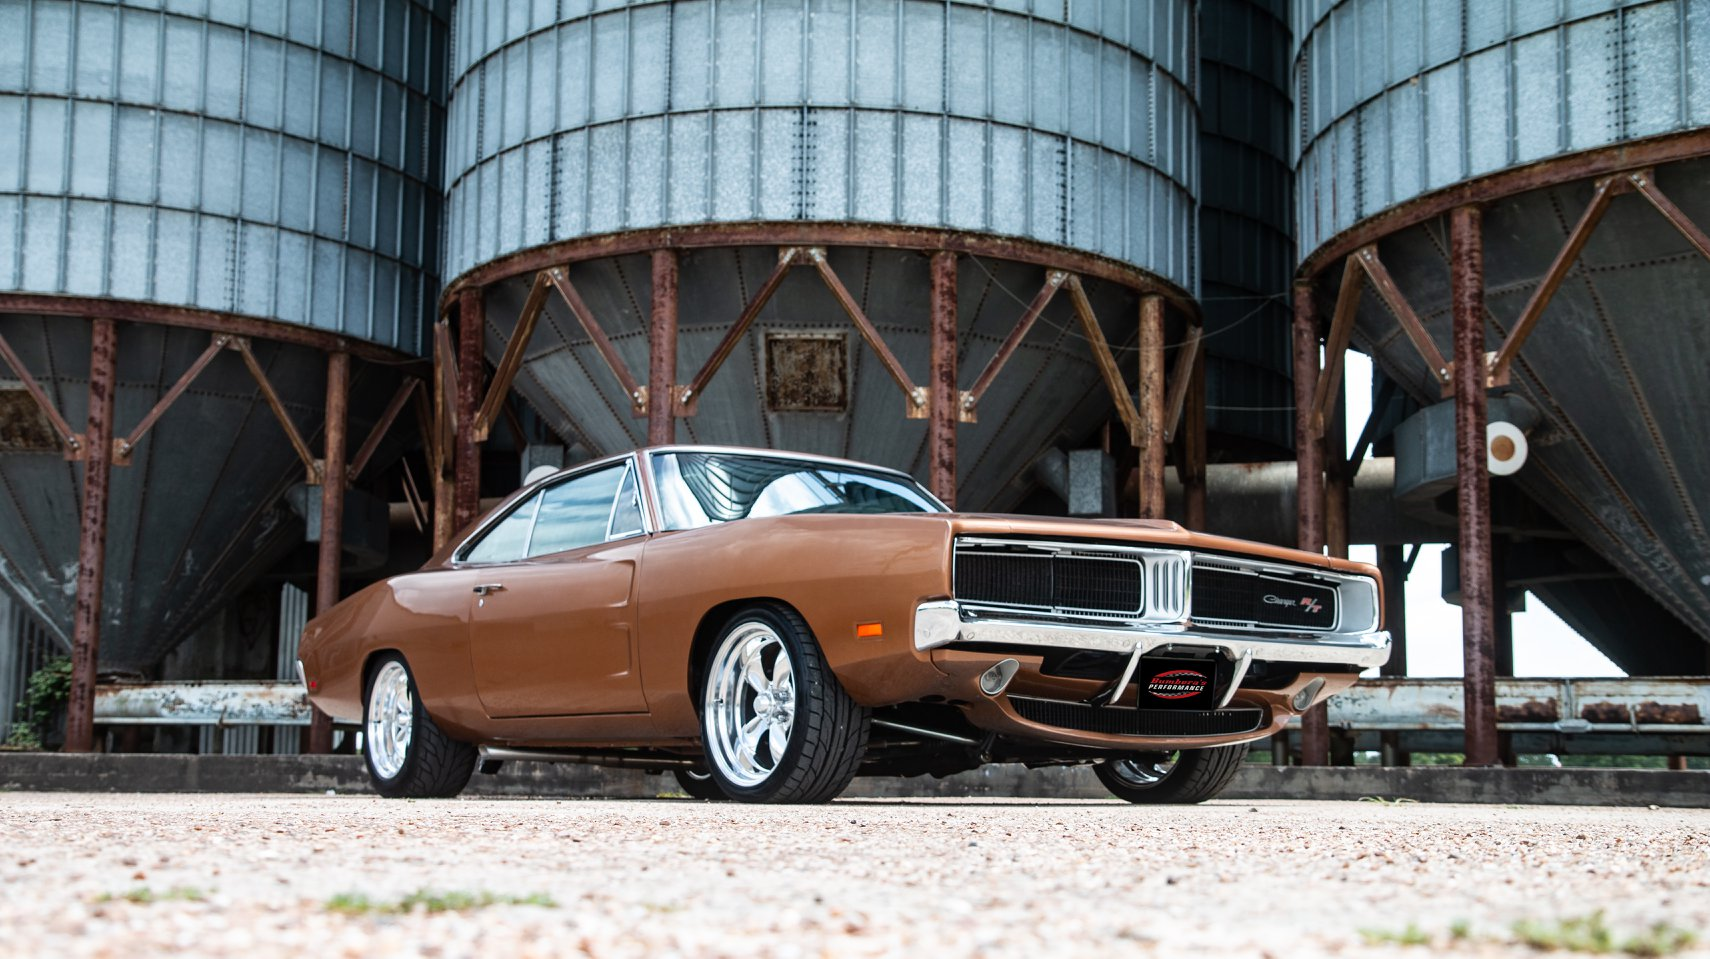 1969 Charger with a Hellcat V8 - engineswapdepot.com